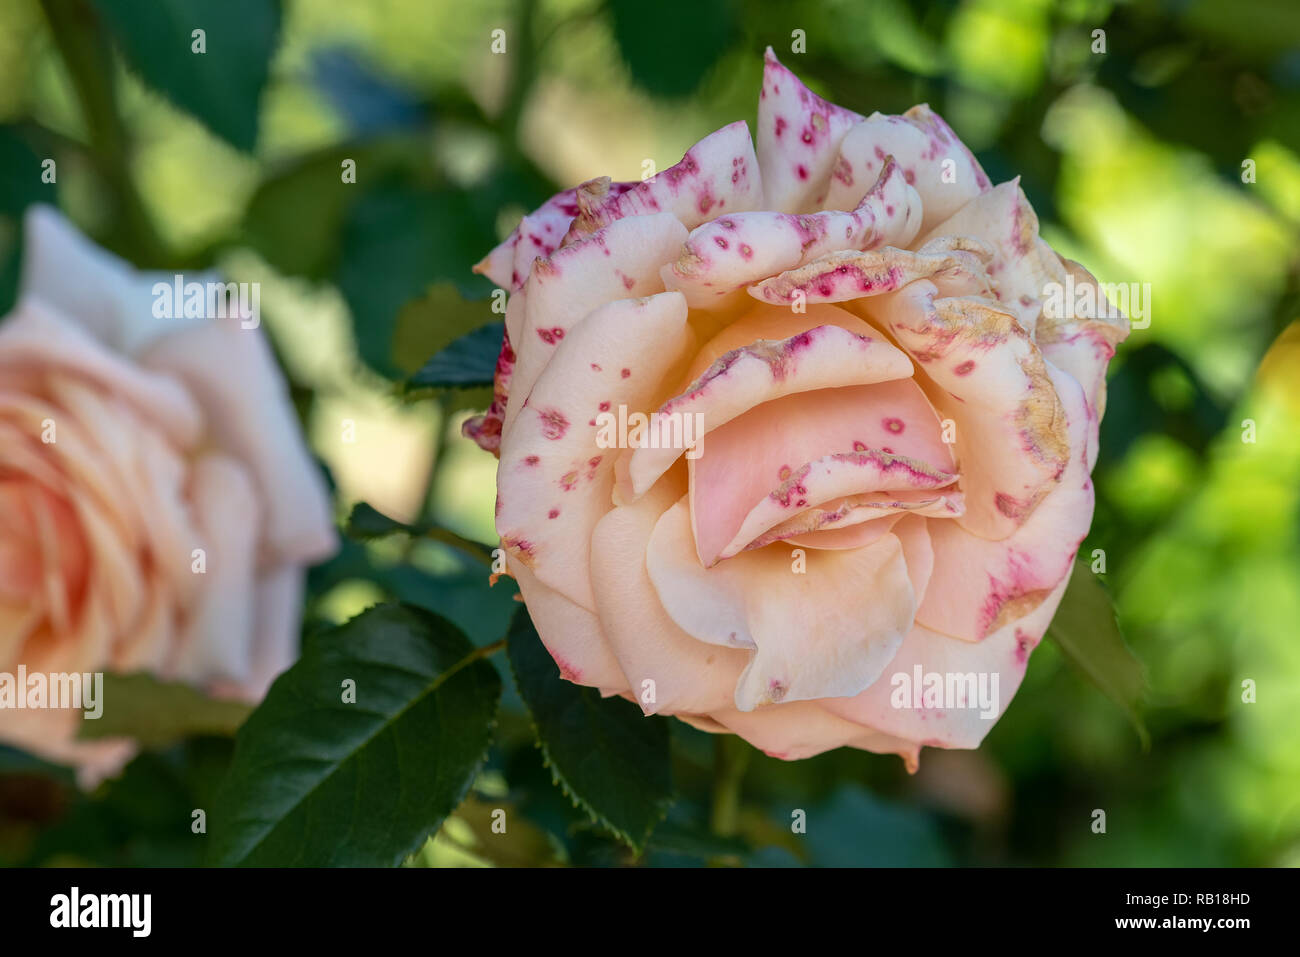 Color outdoor floral macro of a single isolated pink white rose  speckled flecked blossom,natural blurred green background,detailed texture,sunny - Stock Image